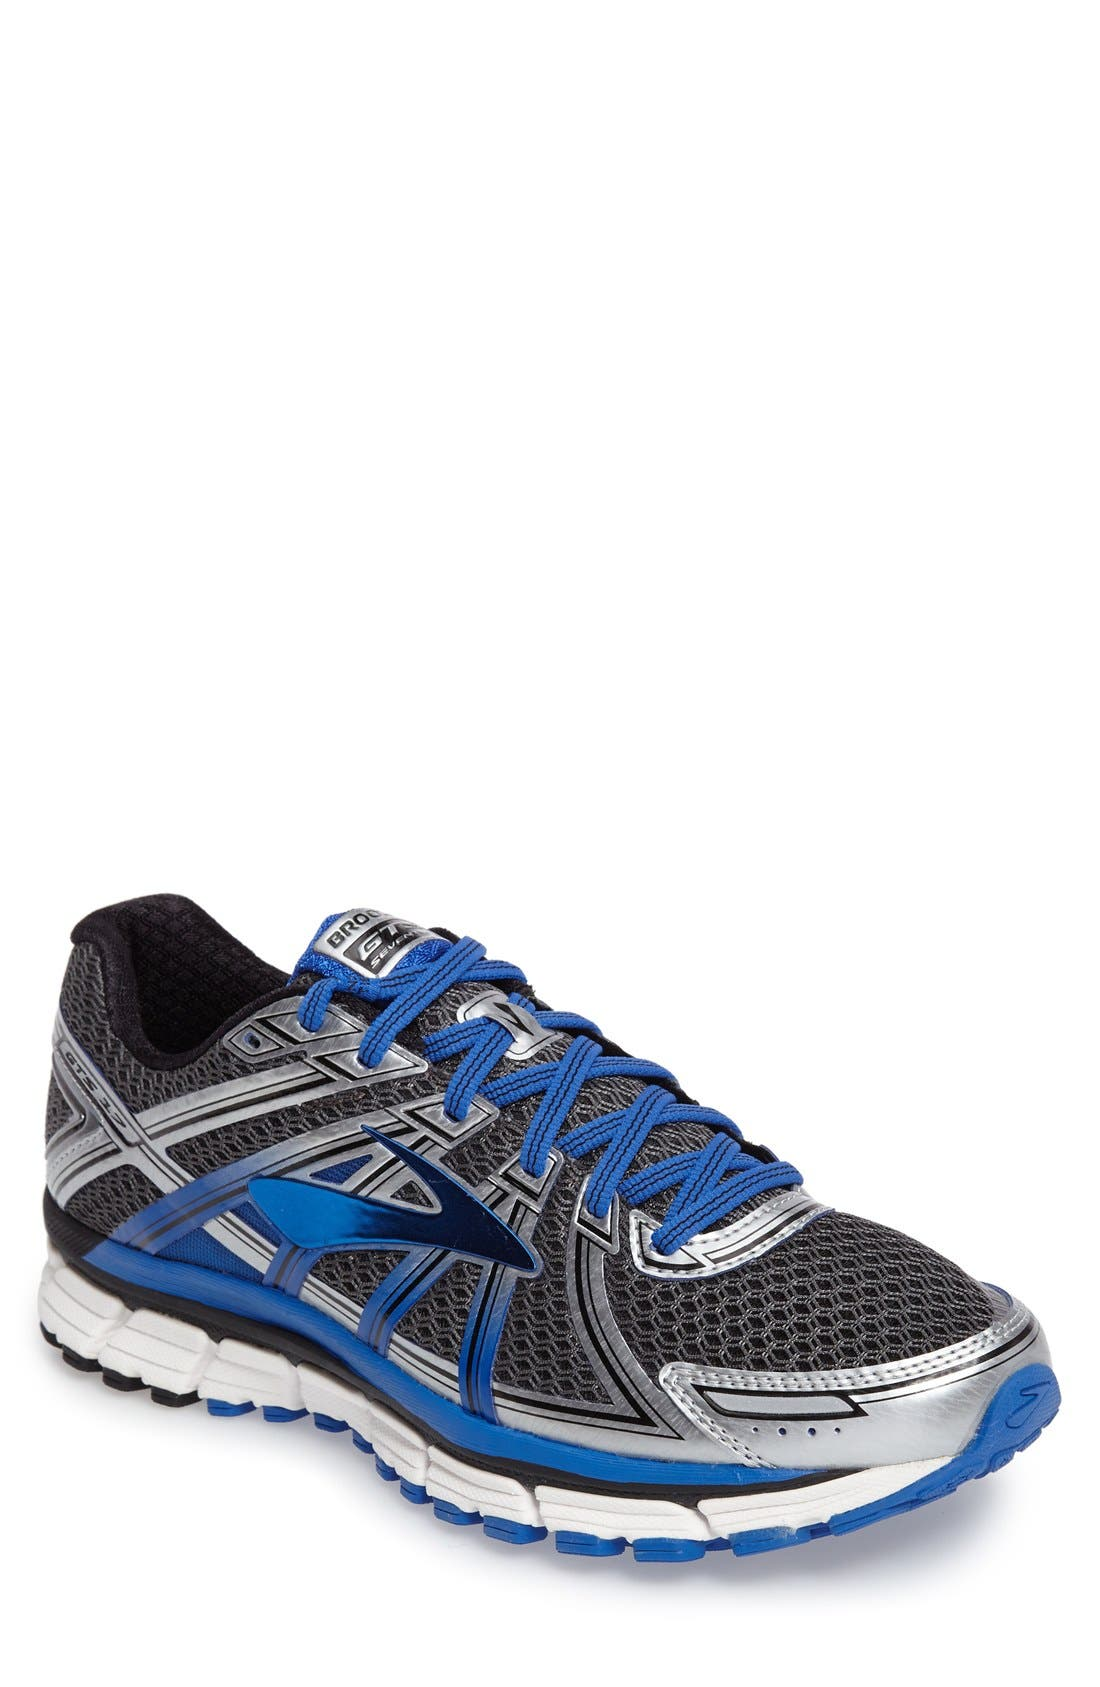 Adrenaline GTS 17 Running Shoe,                         Main,                         color, Anthracite/ Blue/ Silver